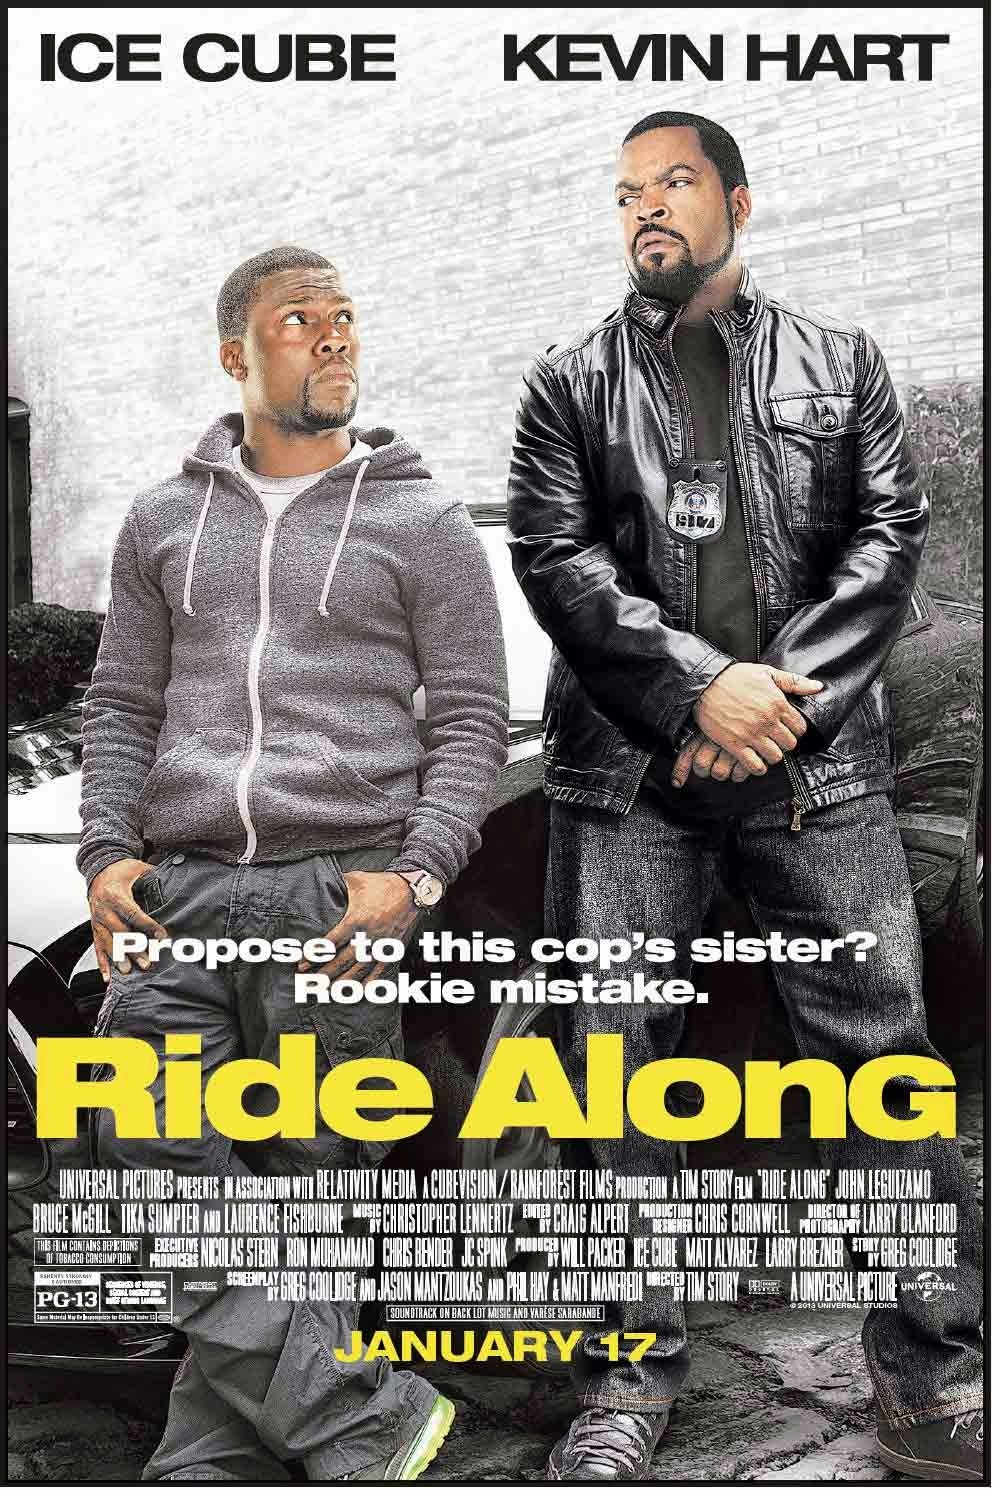 http://static.tvtropes.org/pmwiki/pub/images/ride_along_movie_poster_kevin_hart_ice_cube.jpg